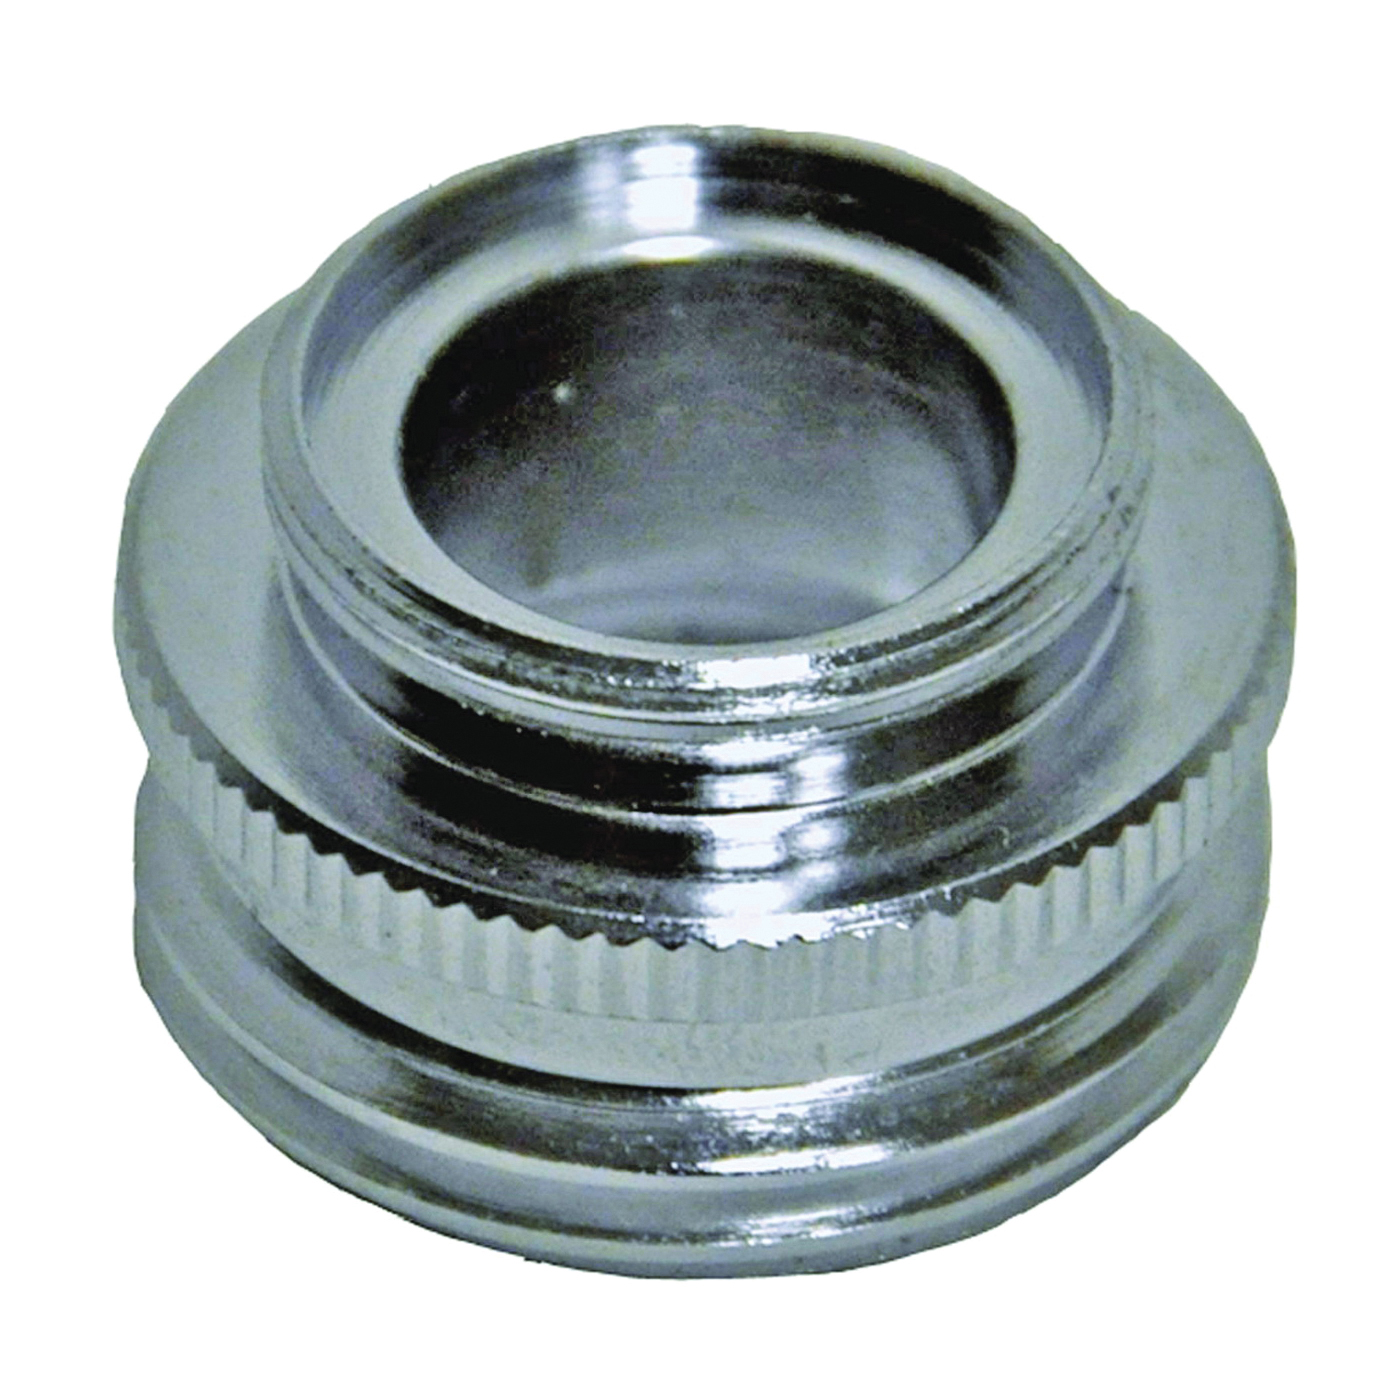 Picture of Danco 10522 Hose Adapter Male x GHM/Female Male x GHM/Female, Male x GHM/Female, Brass, Chrome